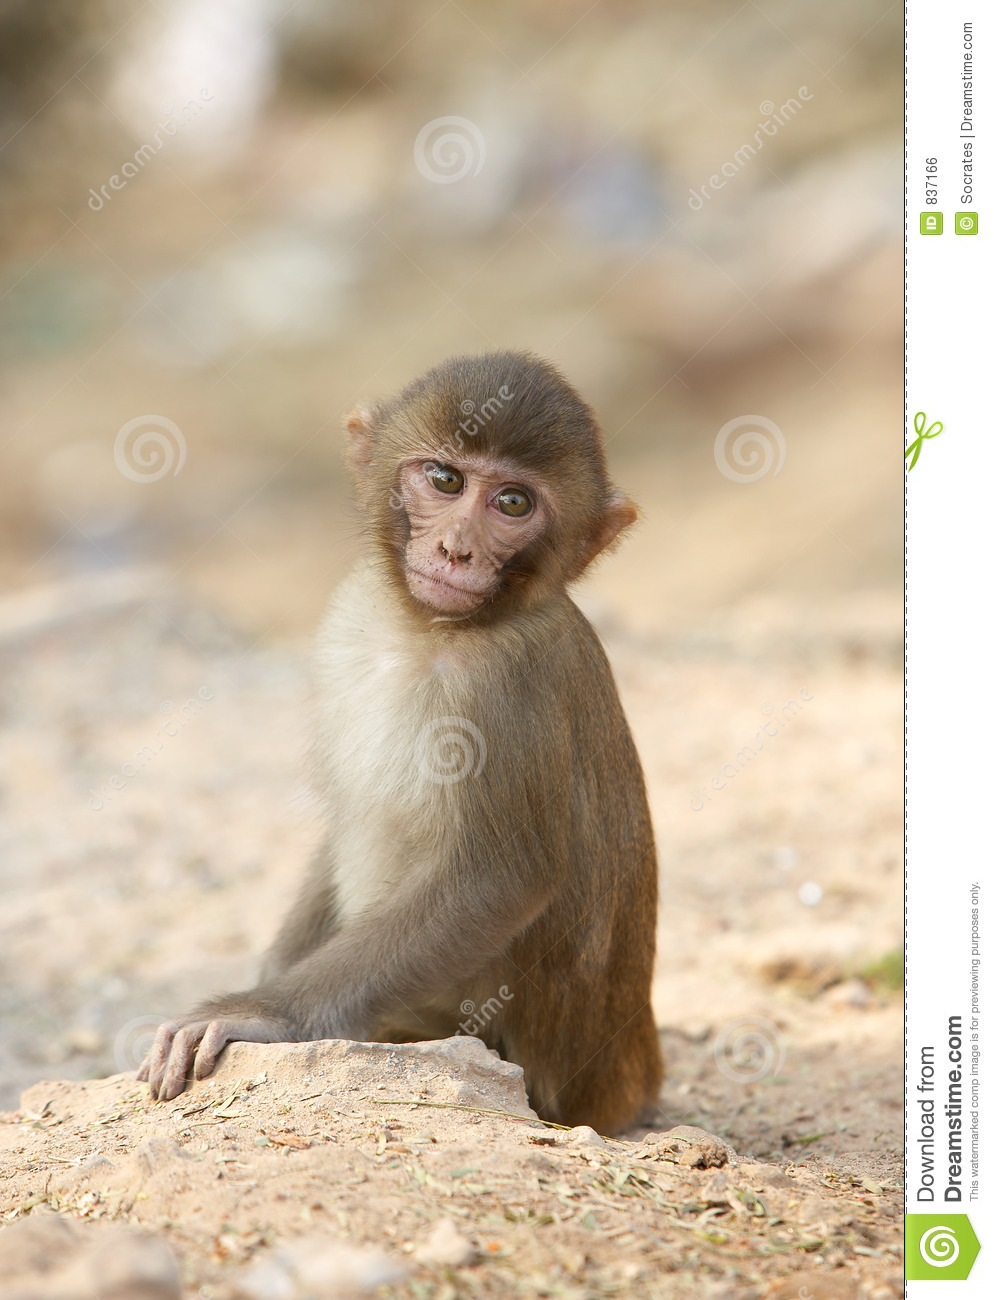 Indian Monkey Images Young Indian monkey st...